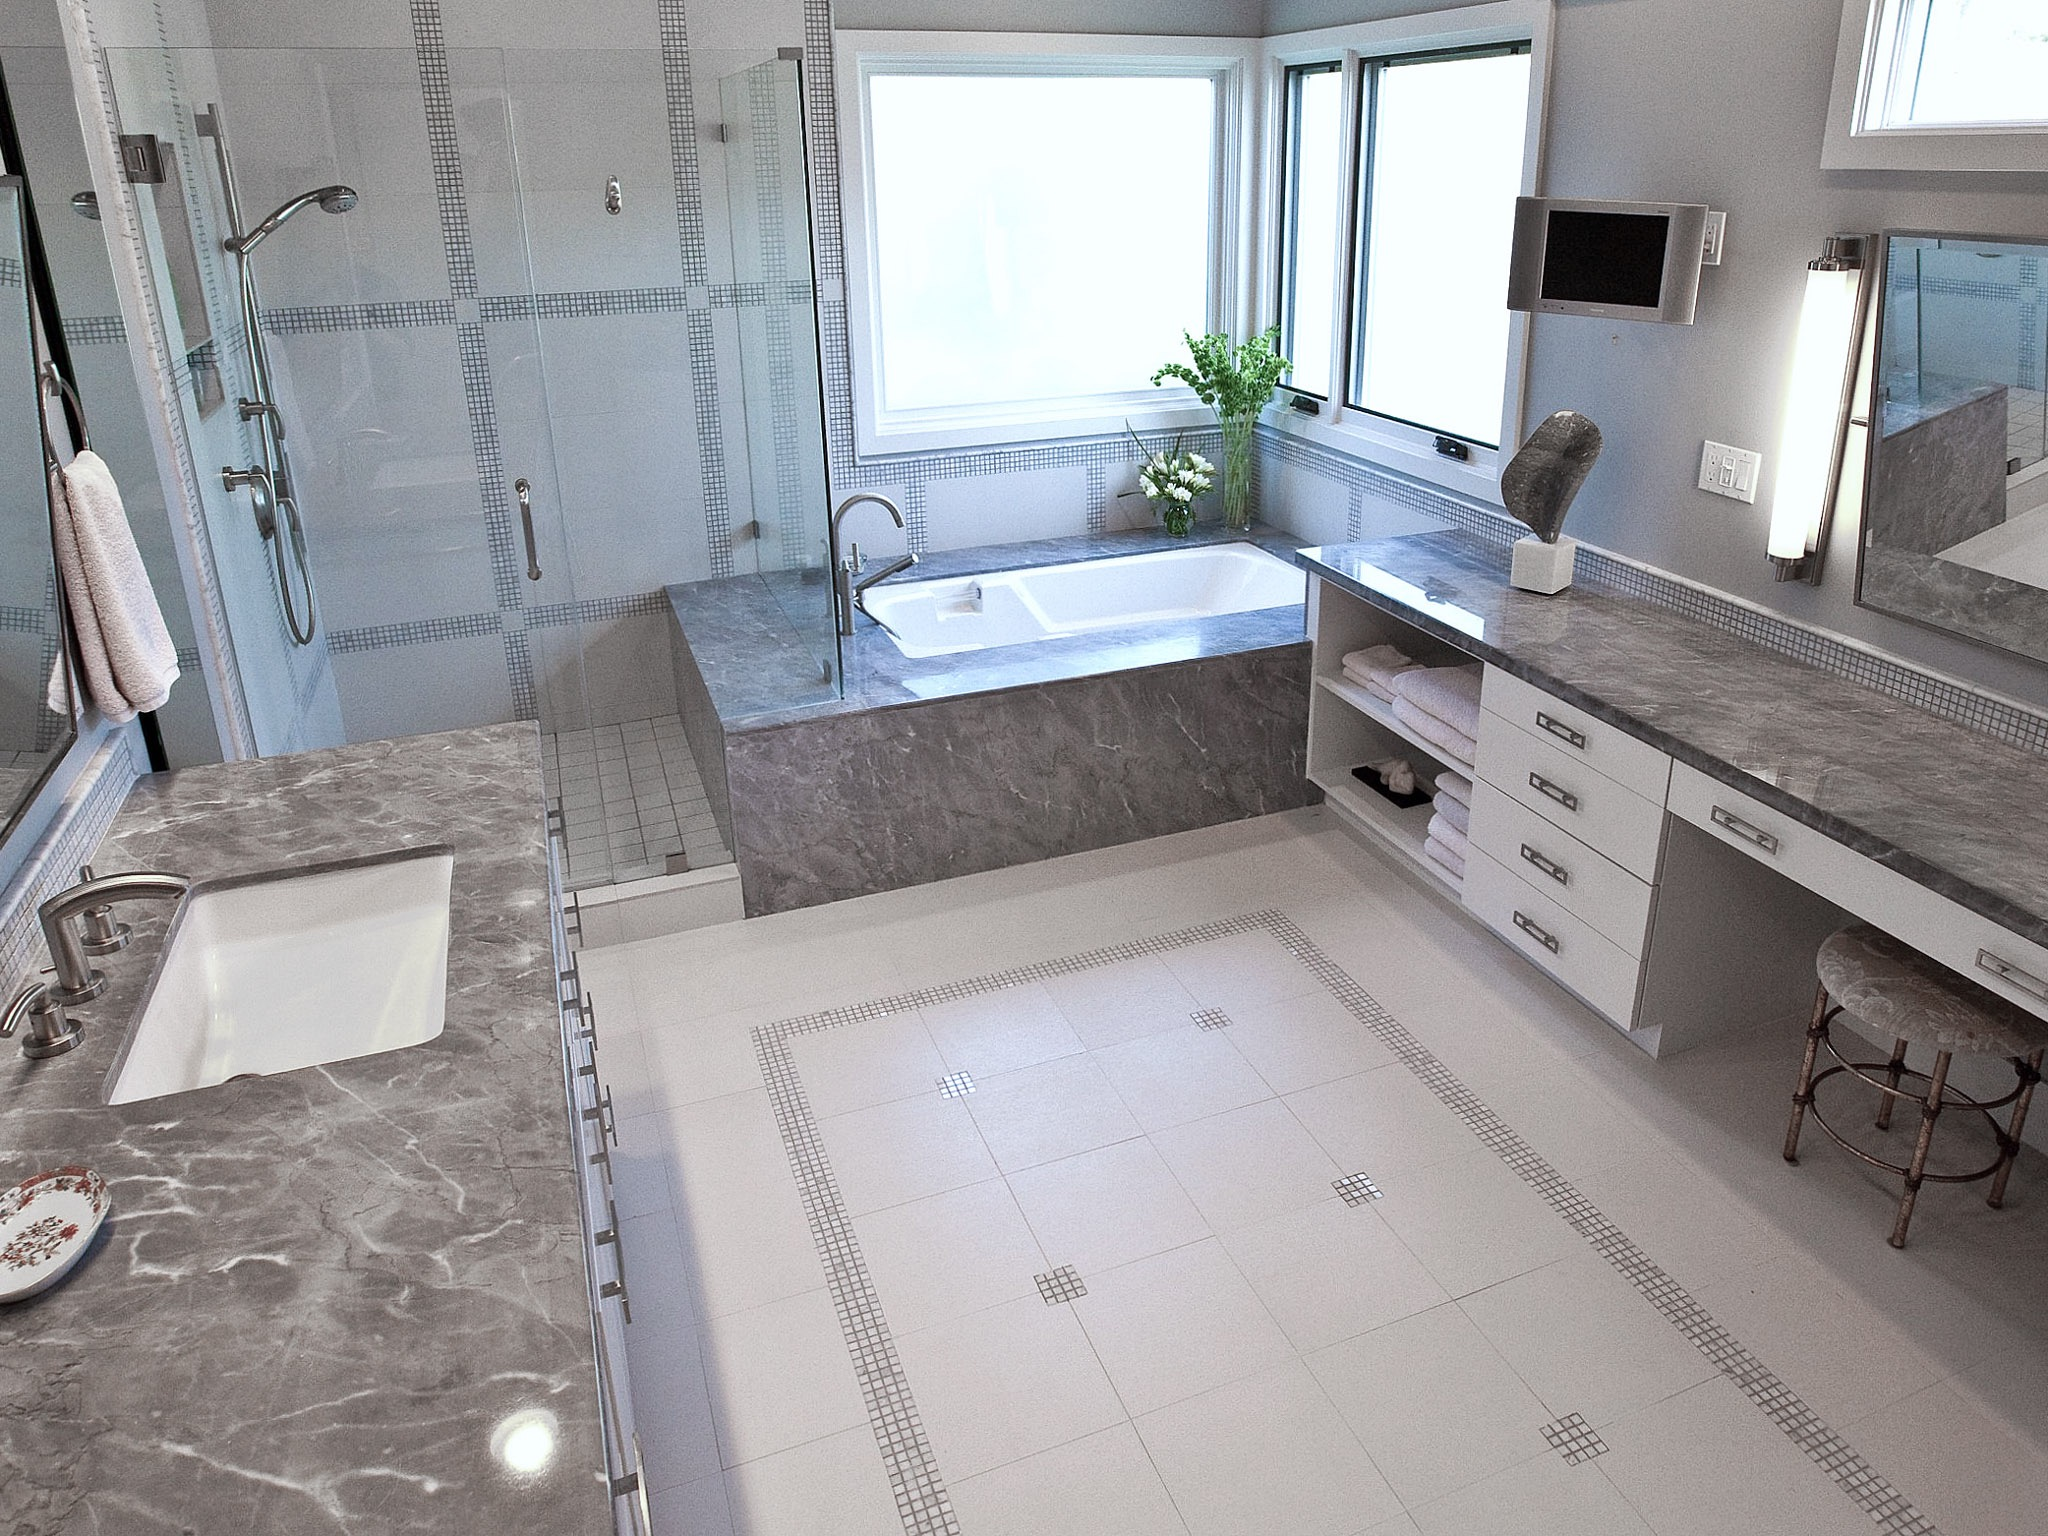 Modern Bathroom Wall Decor With Porcelain And Mosaic Floor Tiles (Image 10 of 18)